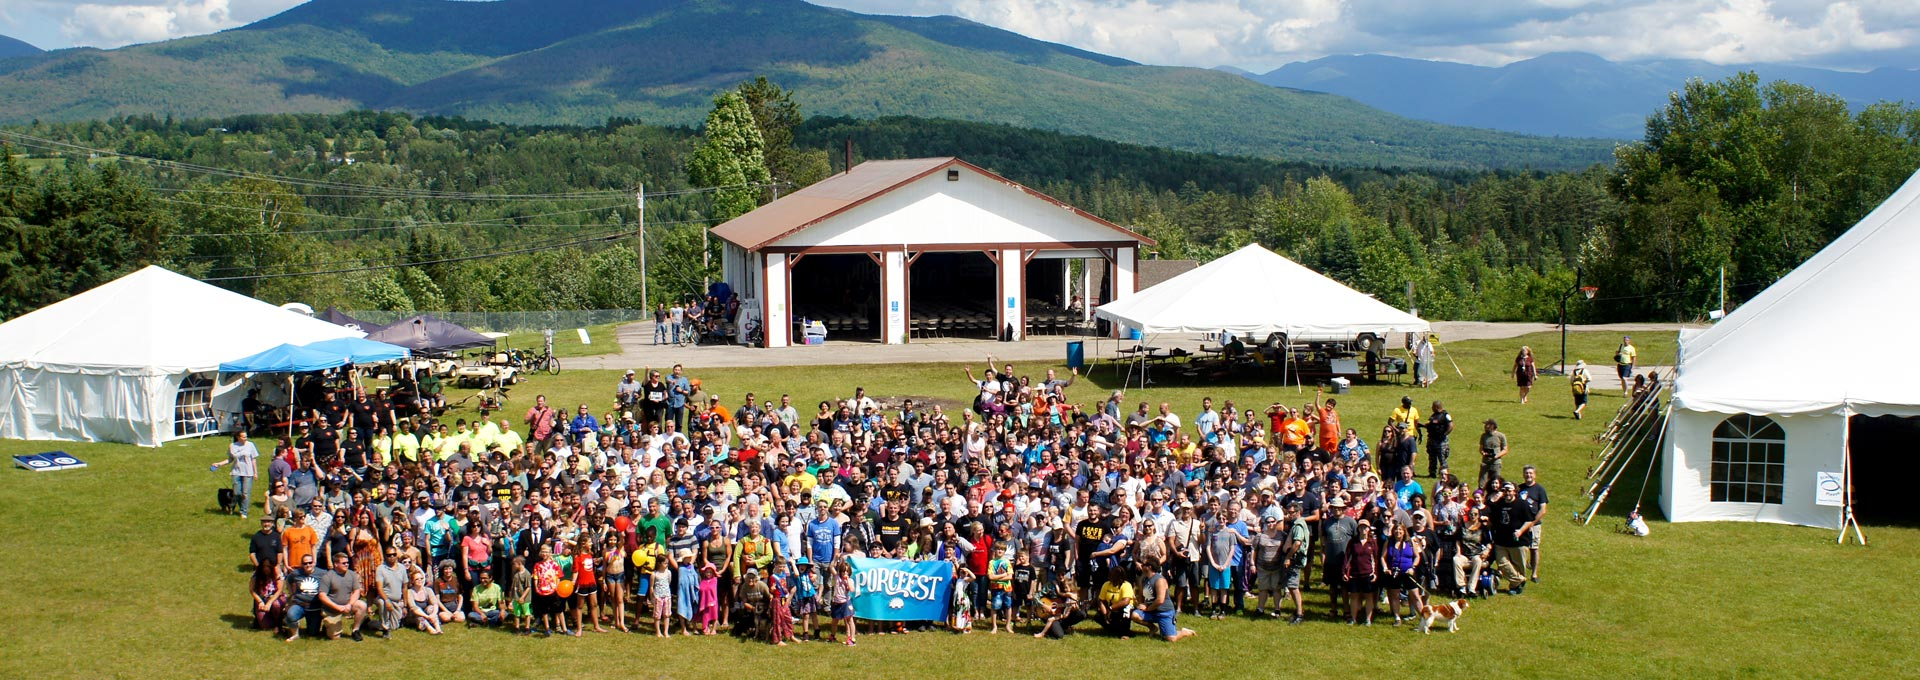 PorcFest Group Photo